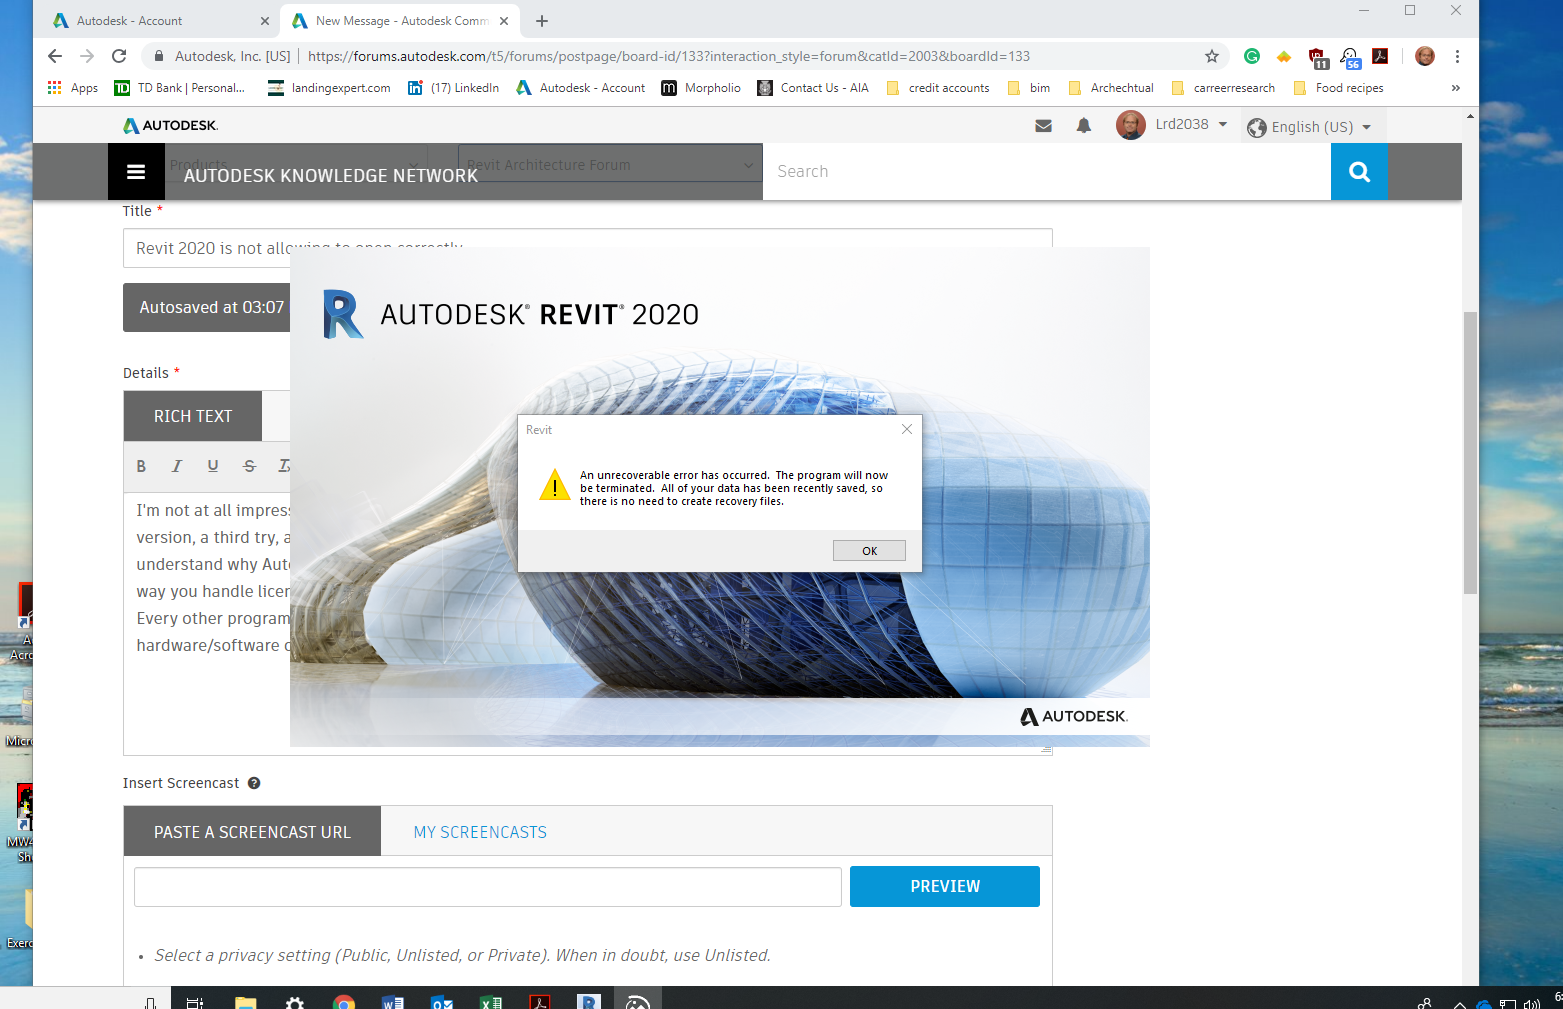 Revit 2020 is not allowing to open correctly - Autodesk